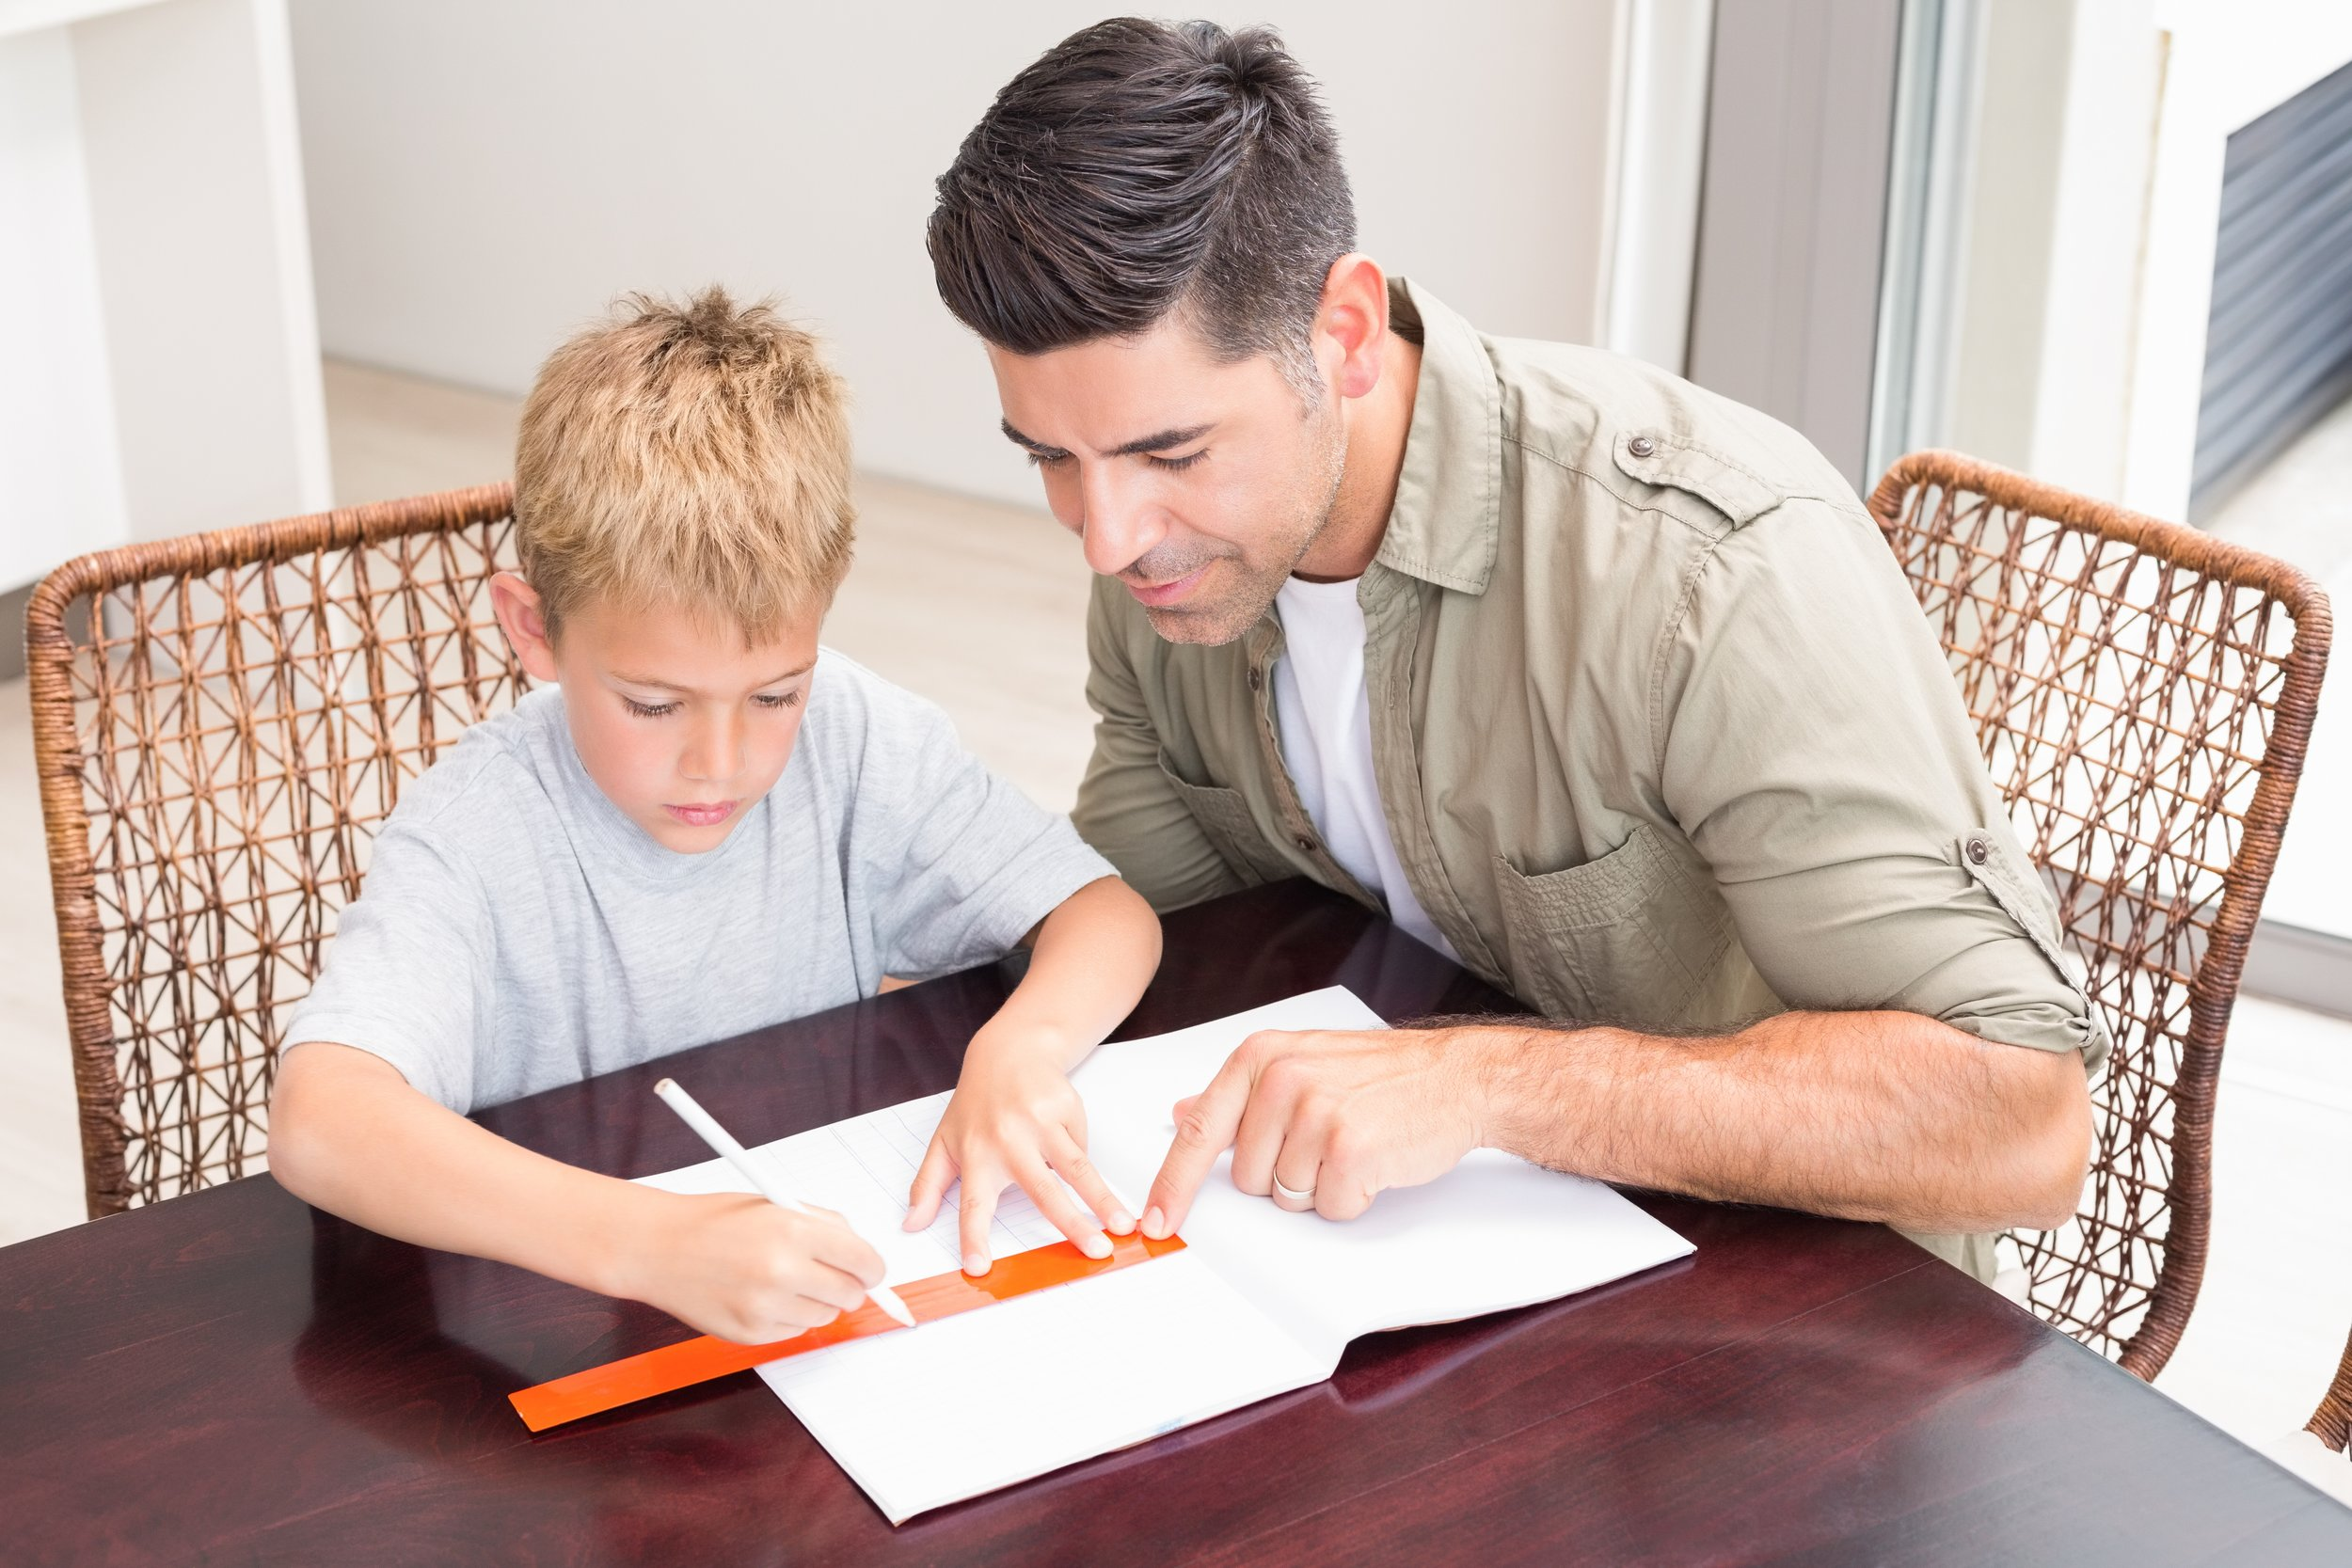 Teaching Your Kids How To Use A Ruler